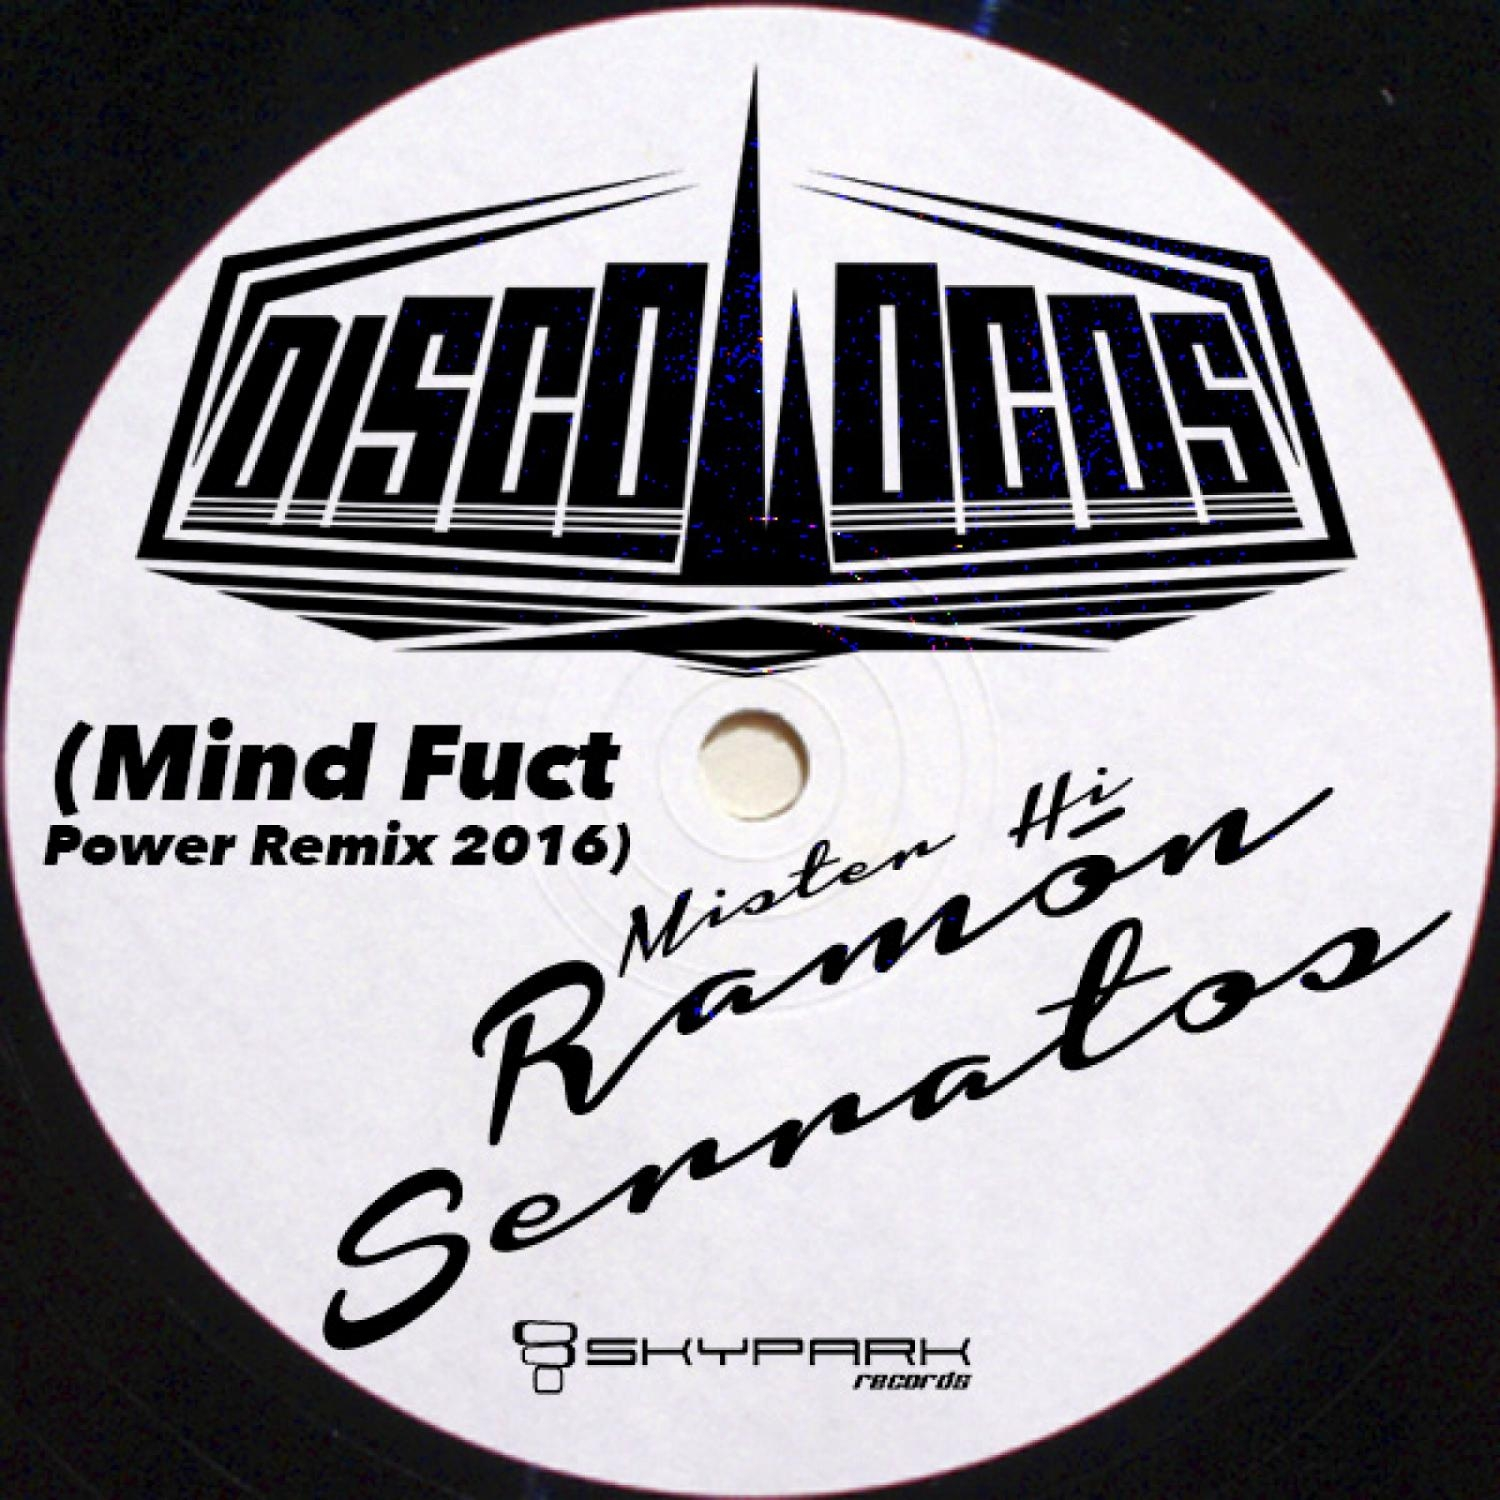 Ramon Serratos - Discolocos Theme (Mind Fuct Power Remix 2016)